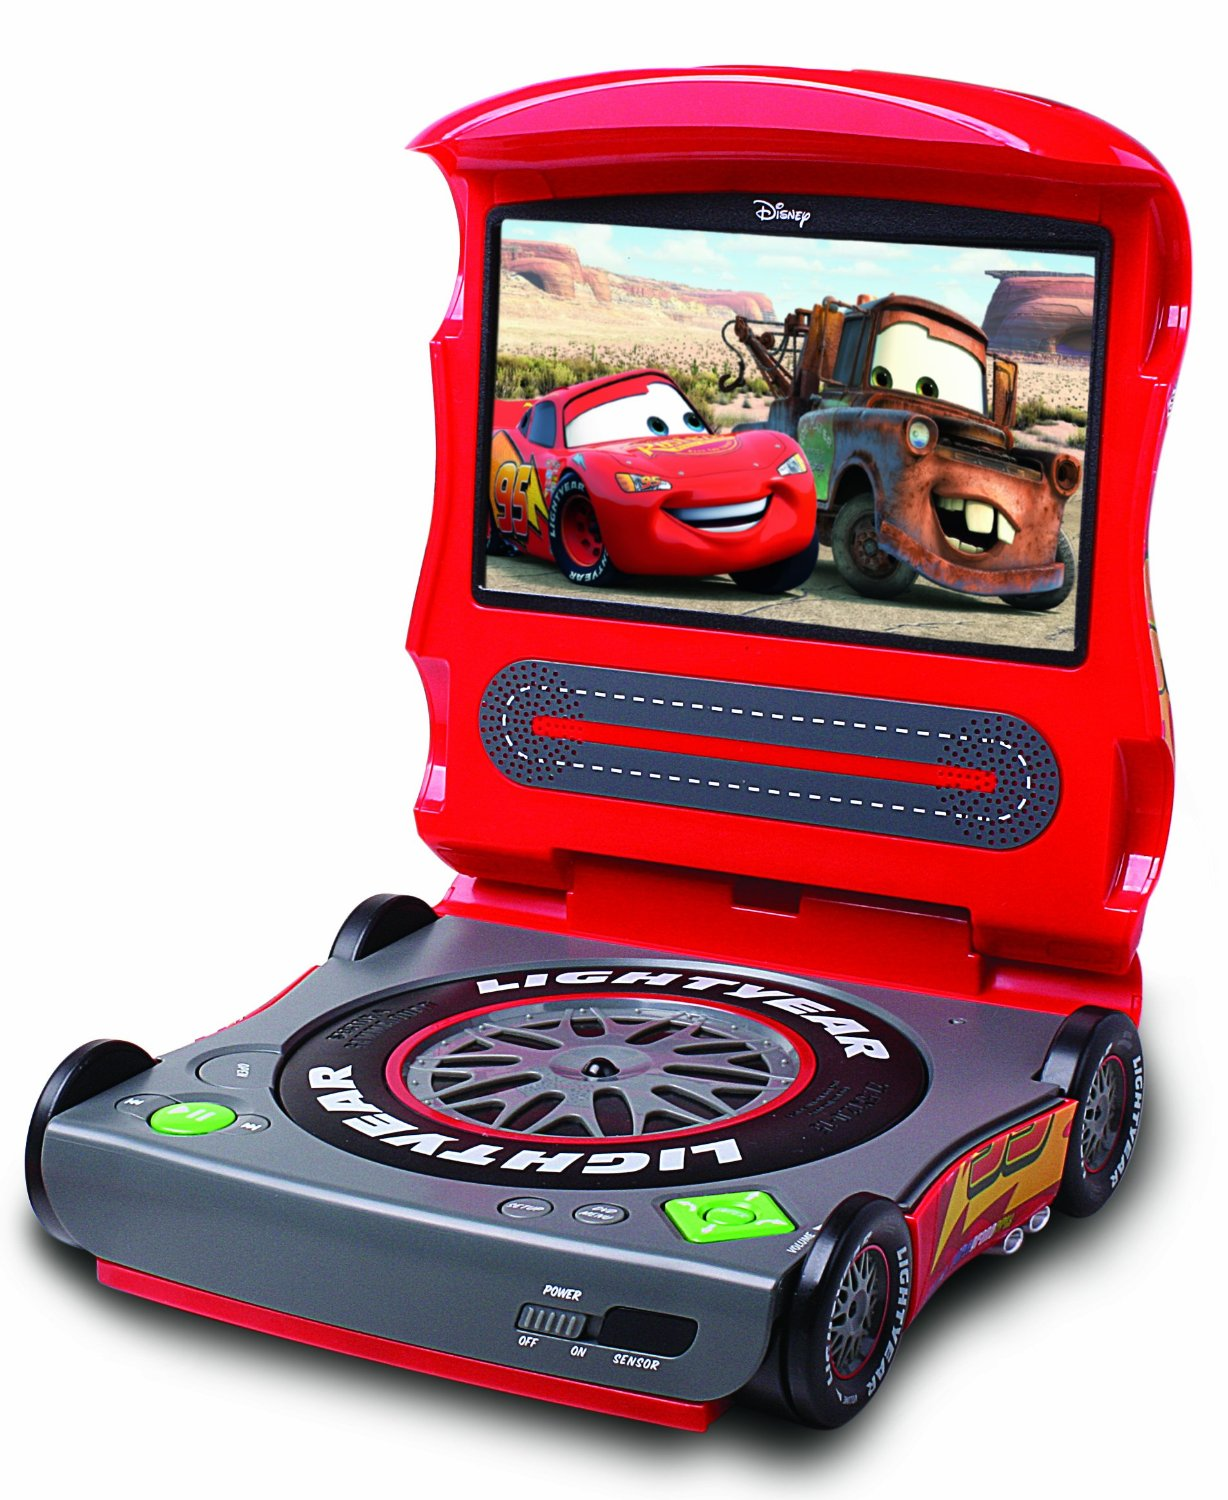 disney finds cars dvd player. Black Bedroom Furniture Sets. Home Design Ideas